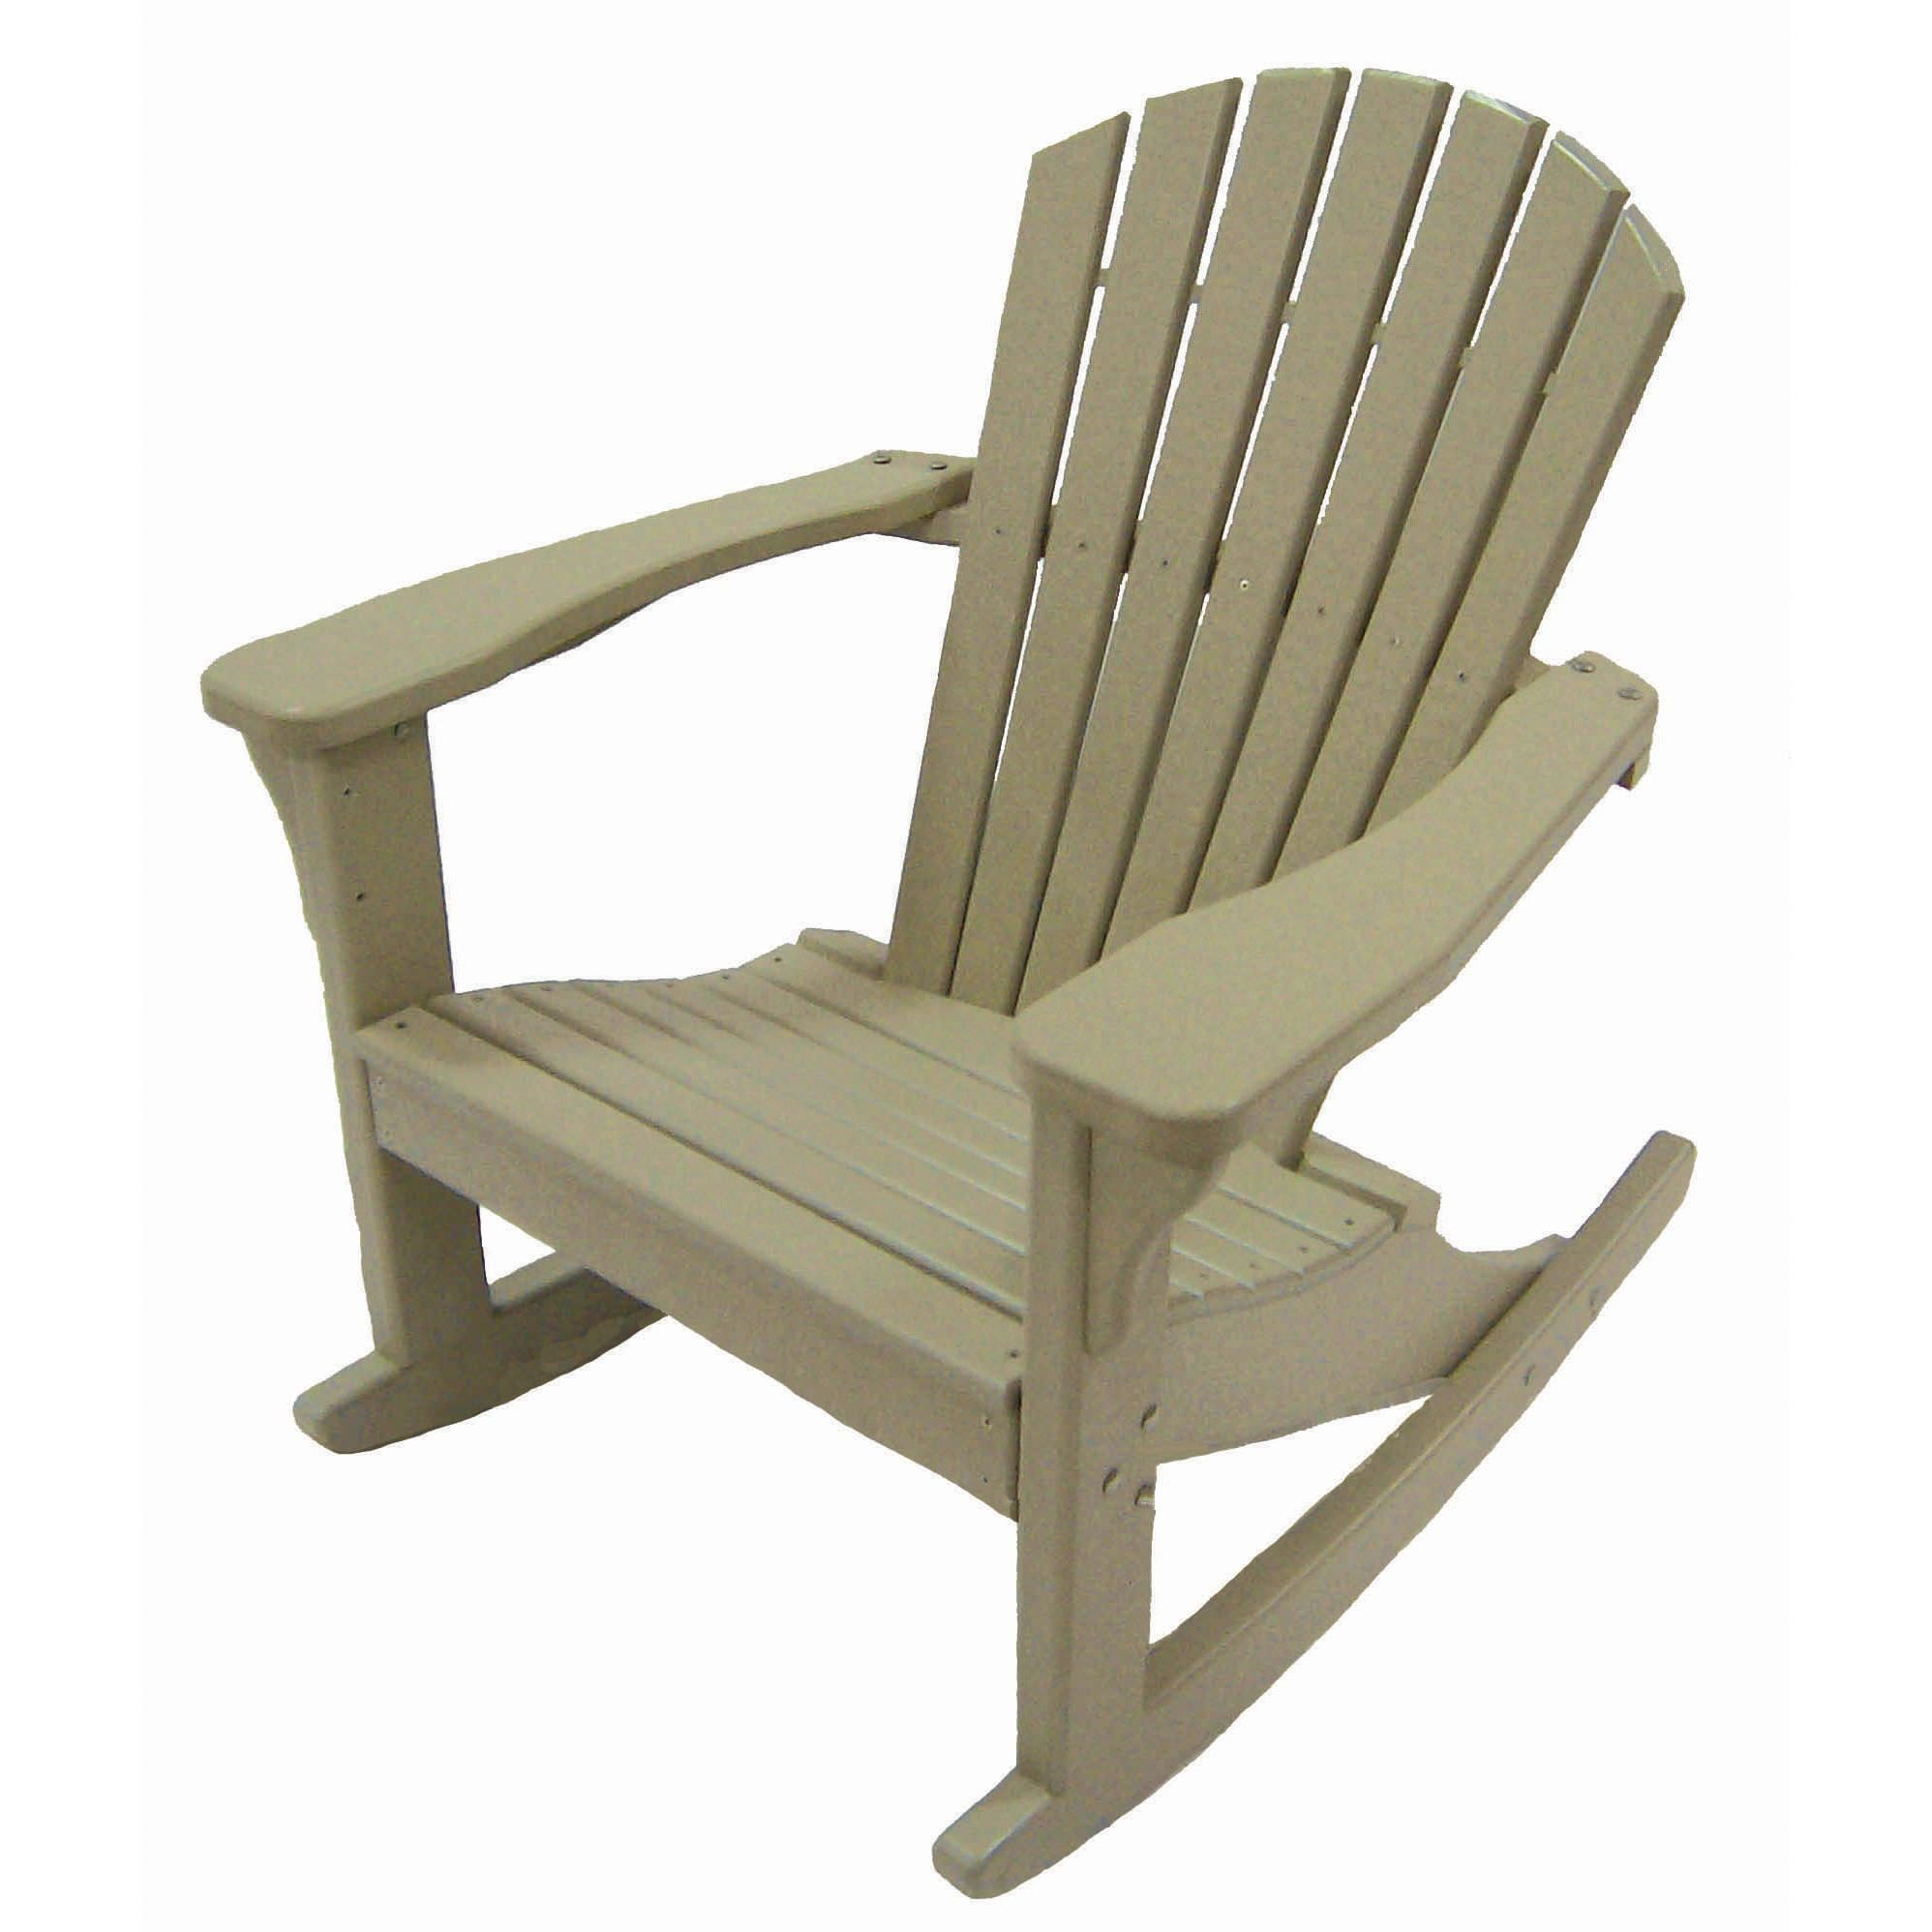 Adirondack Rocking Chair Plans Free Build Easy Your